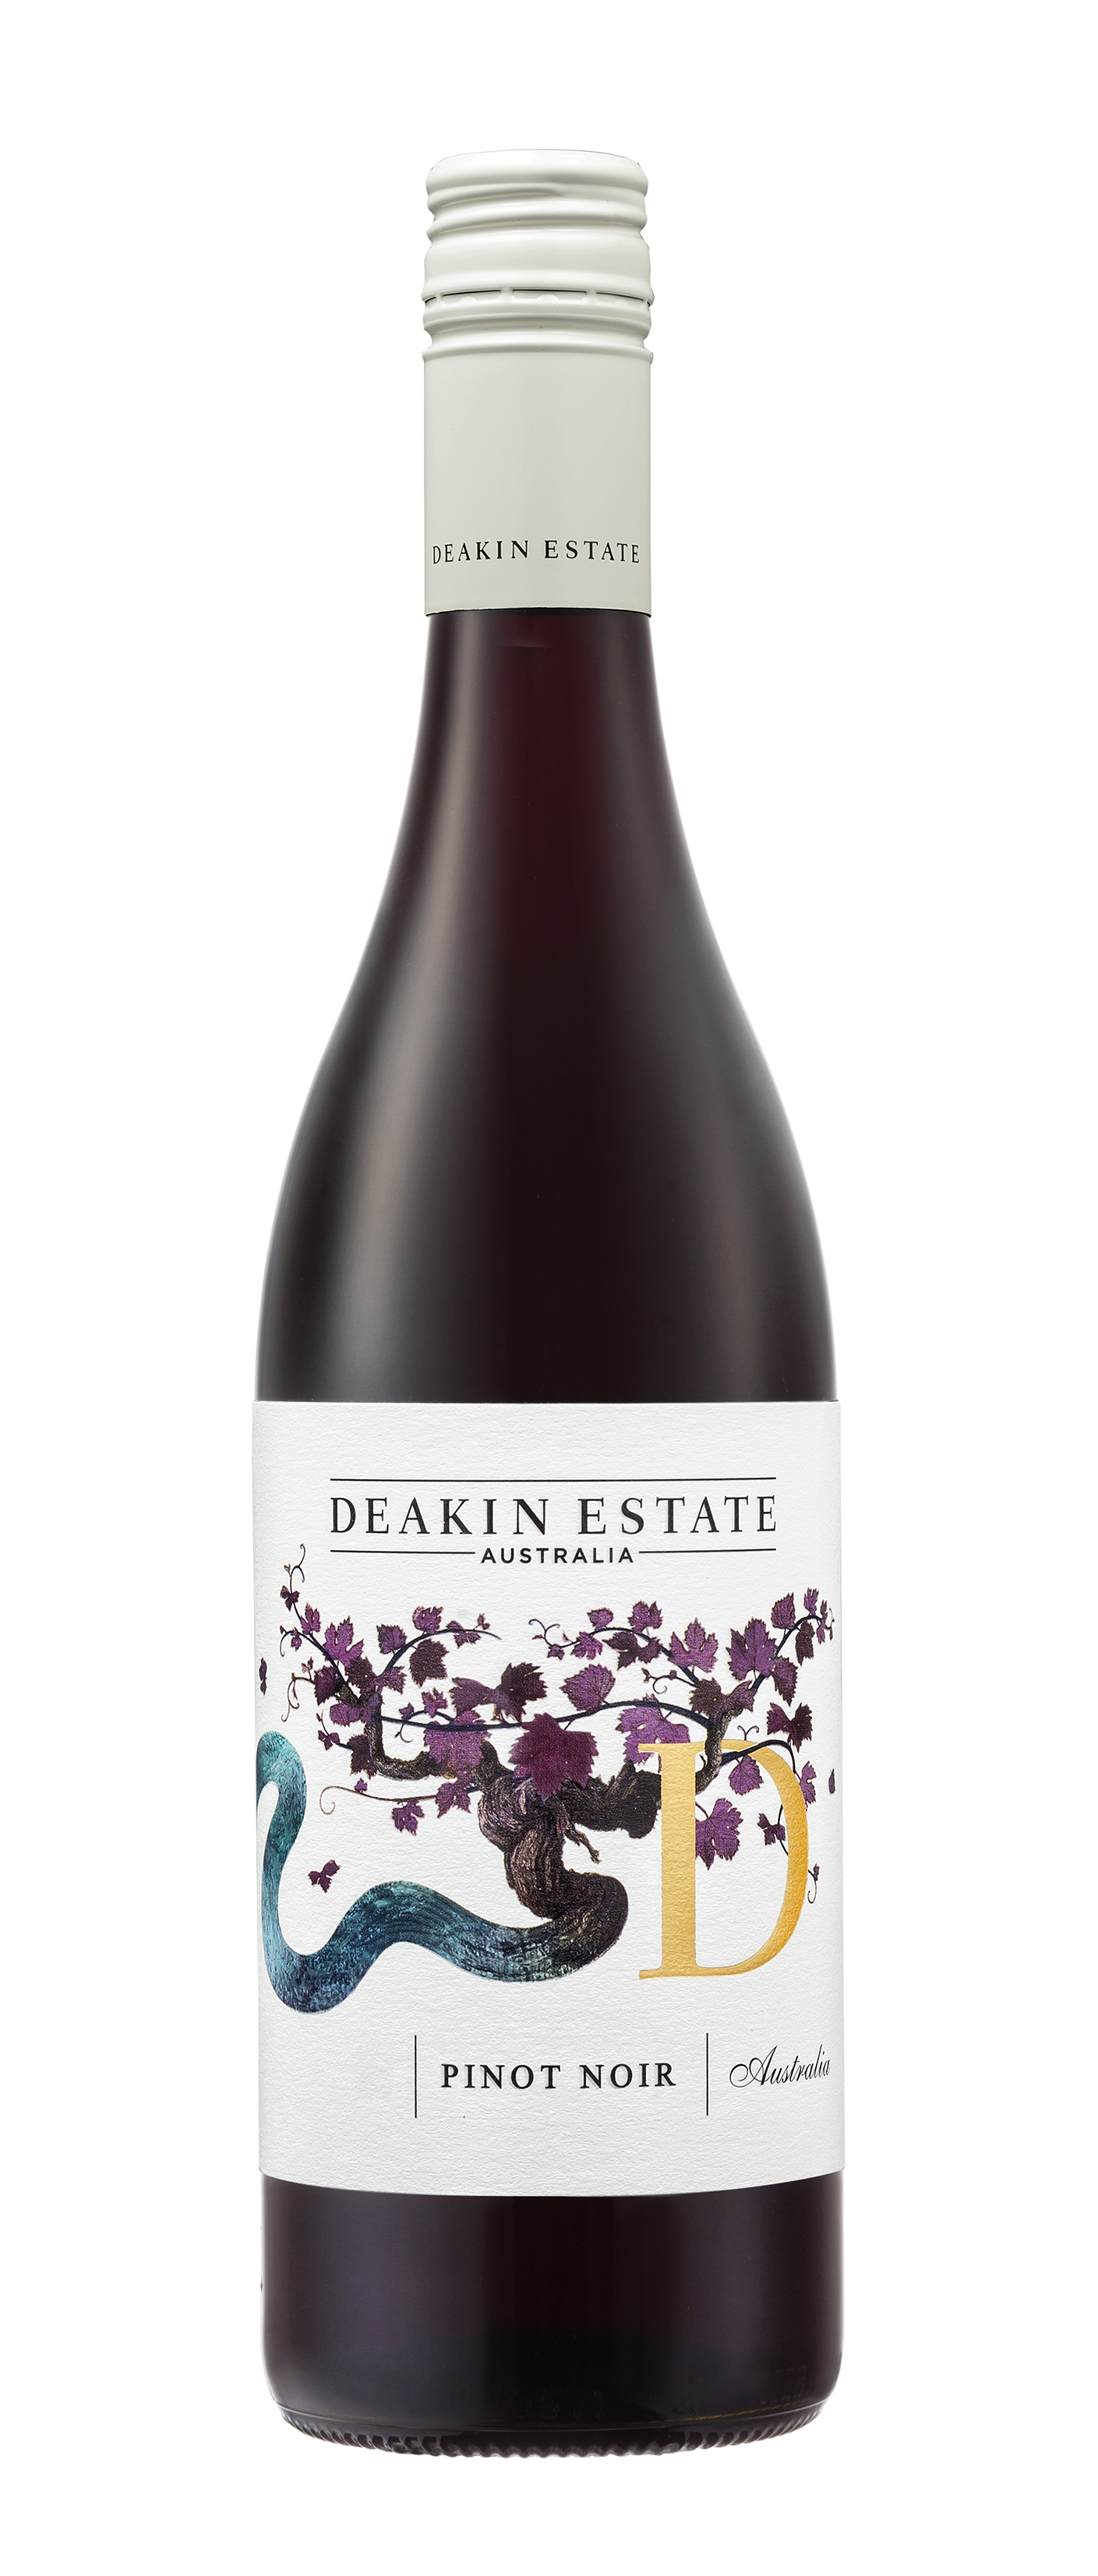 Deakin Estate Pinot Noir